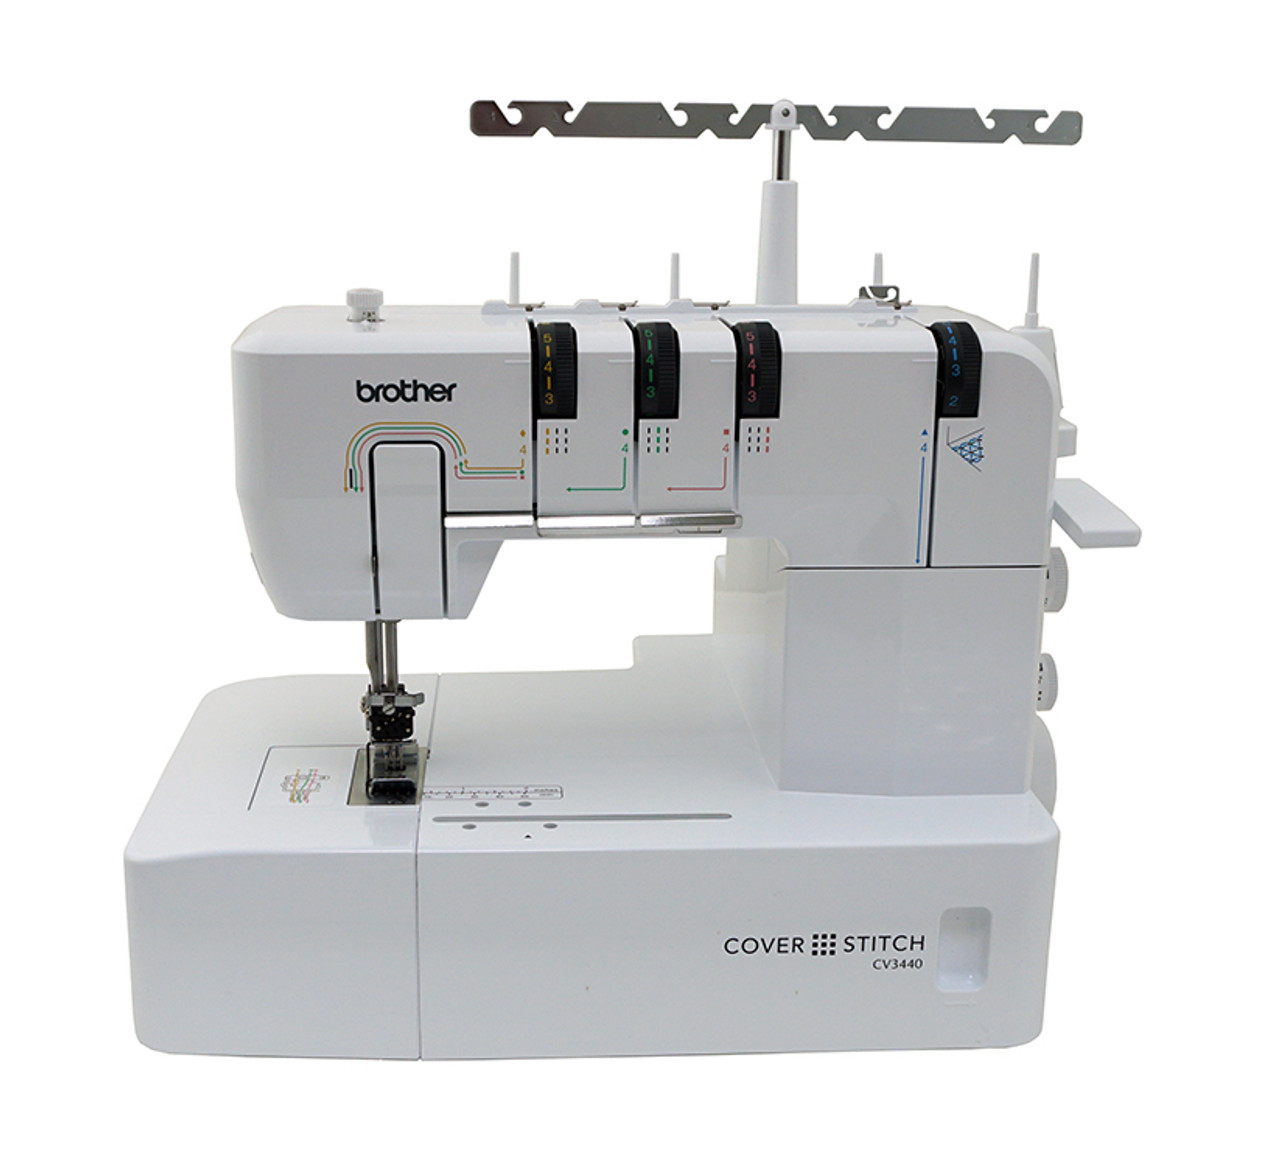 Brother CV40 Single Sided Cover Stitch Machine 4040 FREE Unique Coverstitch Sewing Machine